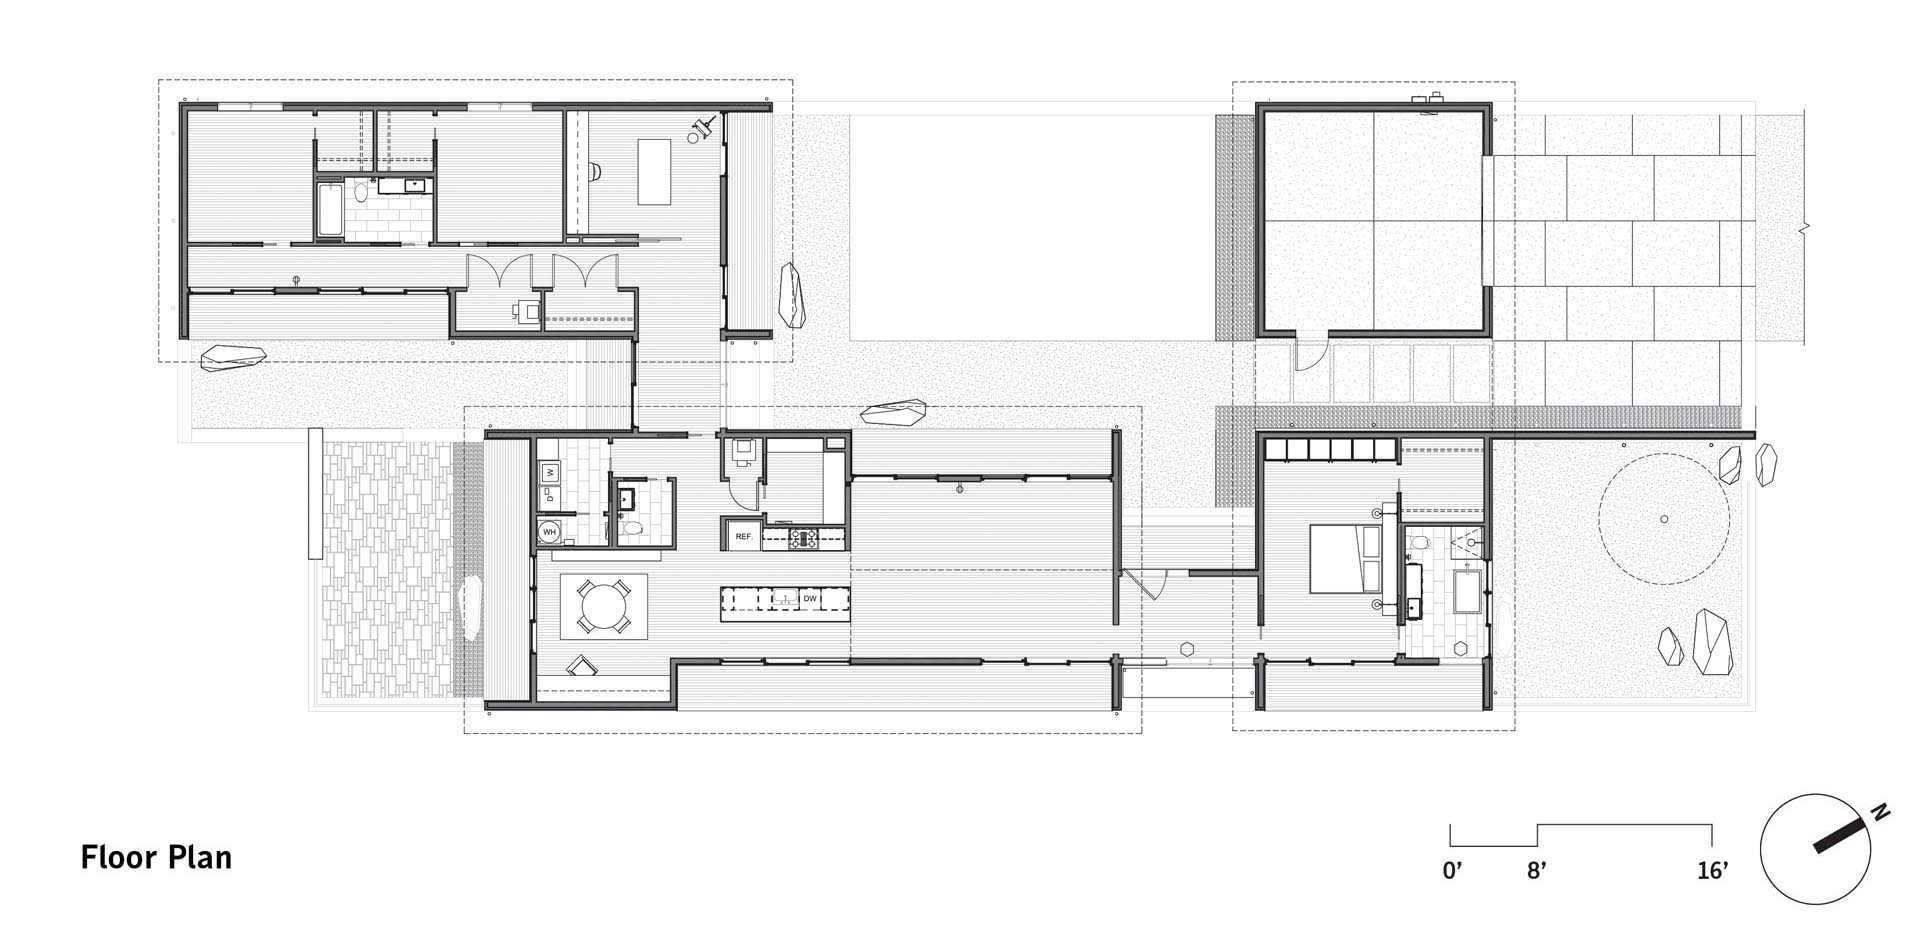 The floor plan of a modern home with hallways that connect the various areas of the interior.